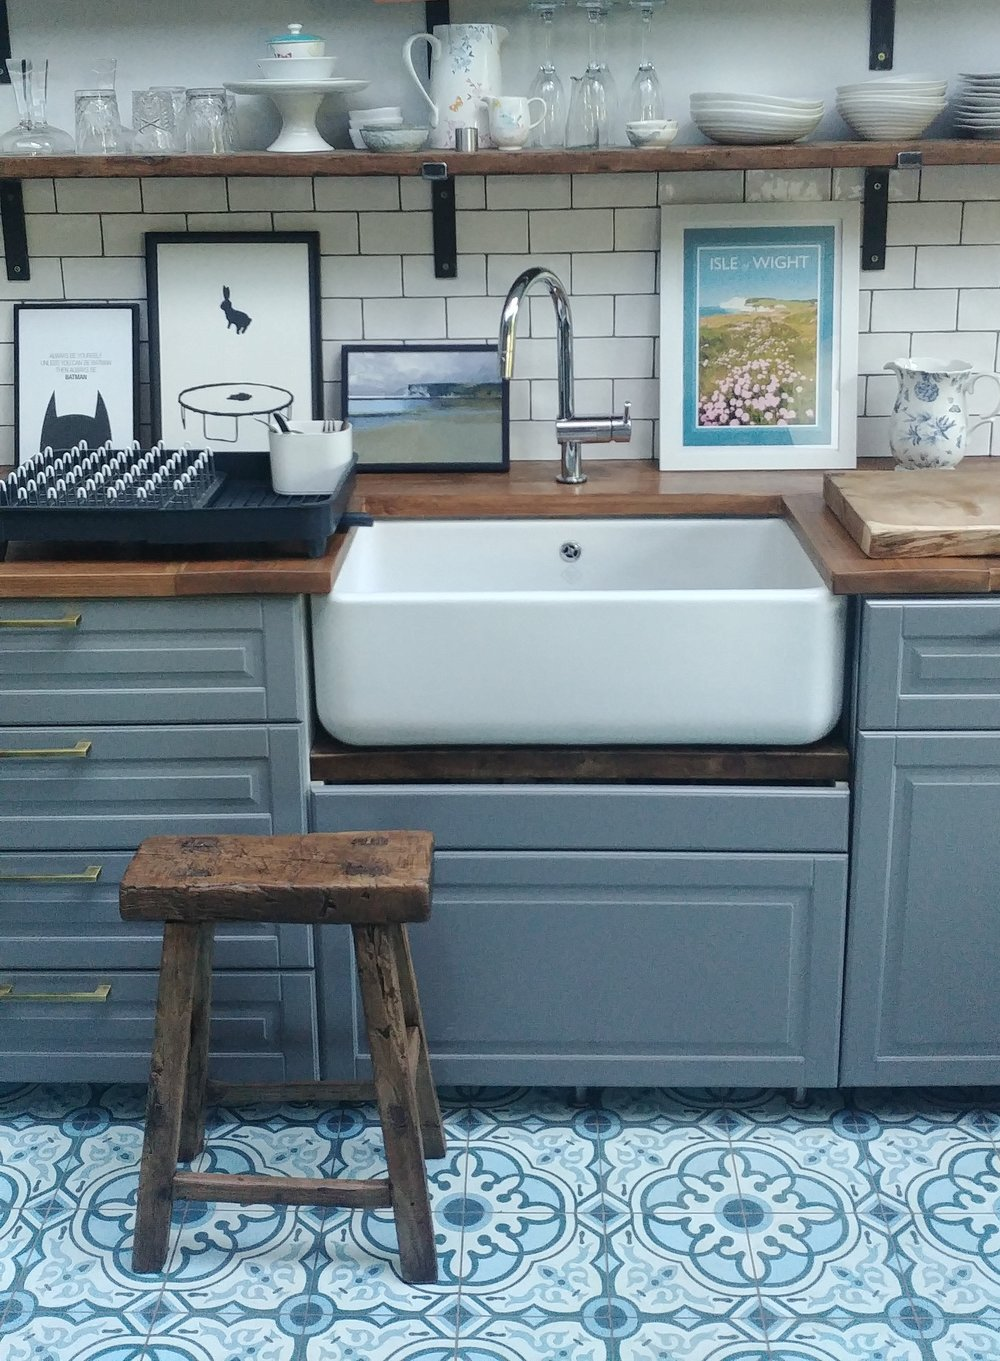 Hints And Tips For How To Diy Install An Ikea Kitchen Alice De Araujo